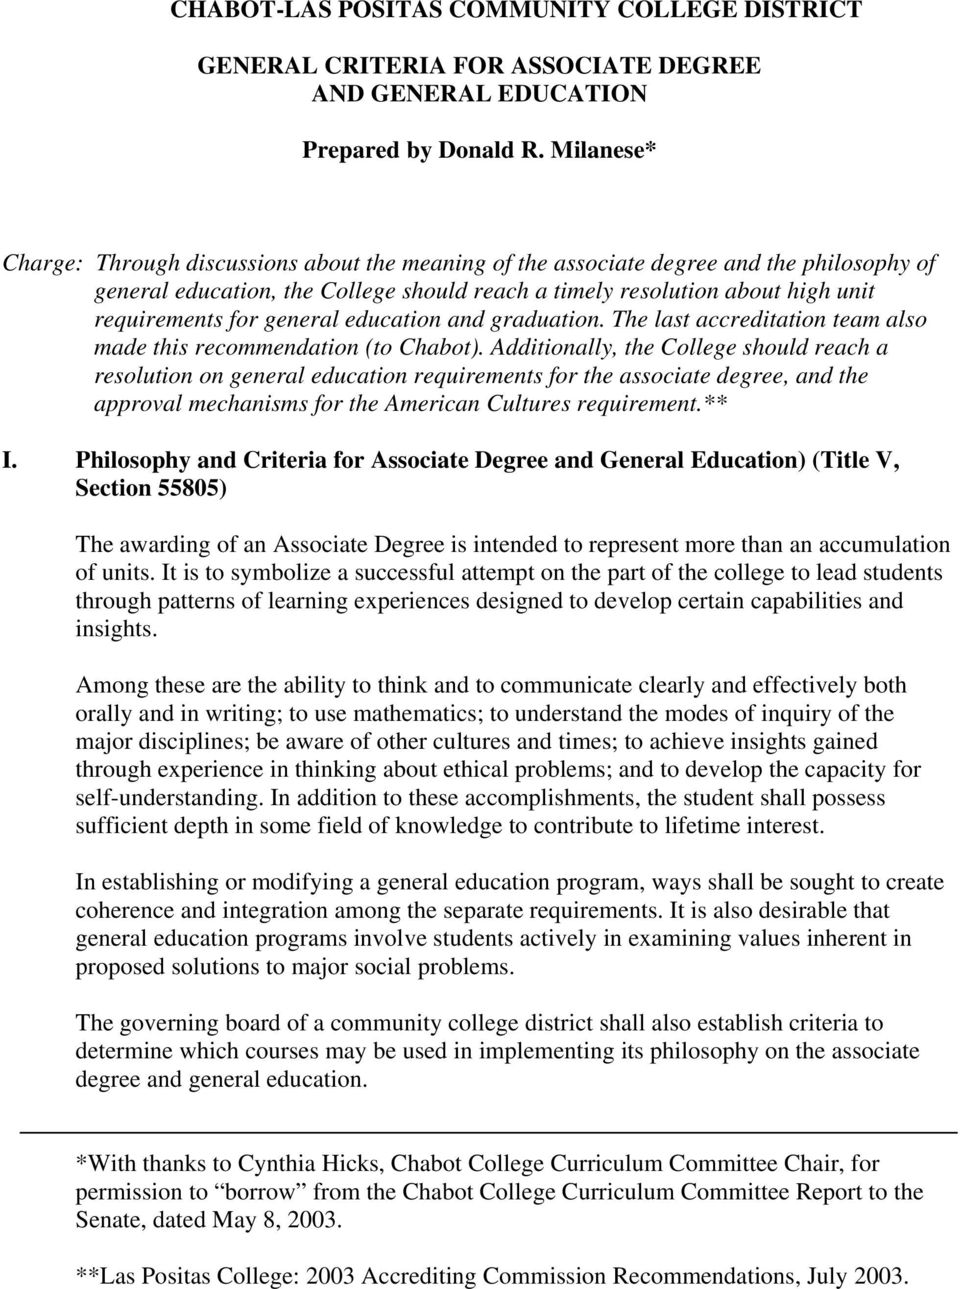 general education and graduation. The last accreditation team also made this recommendation (to Chabot).